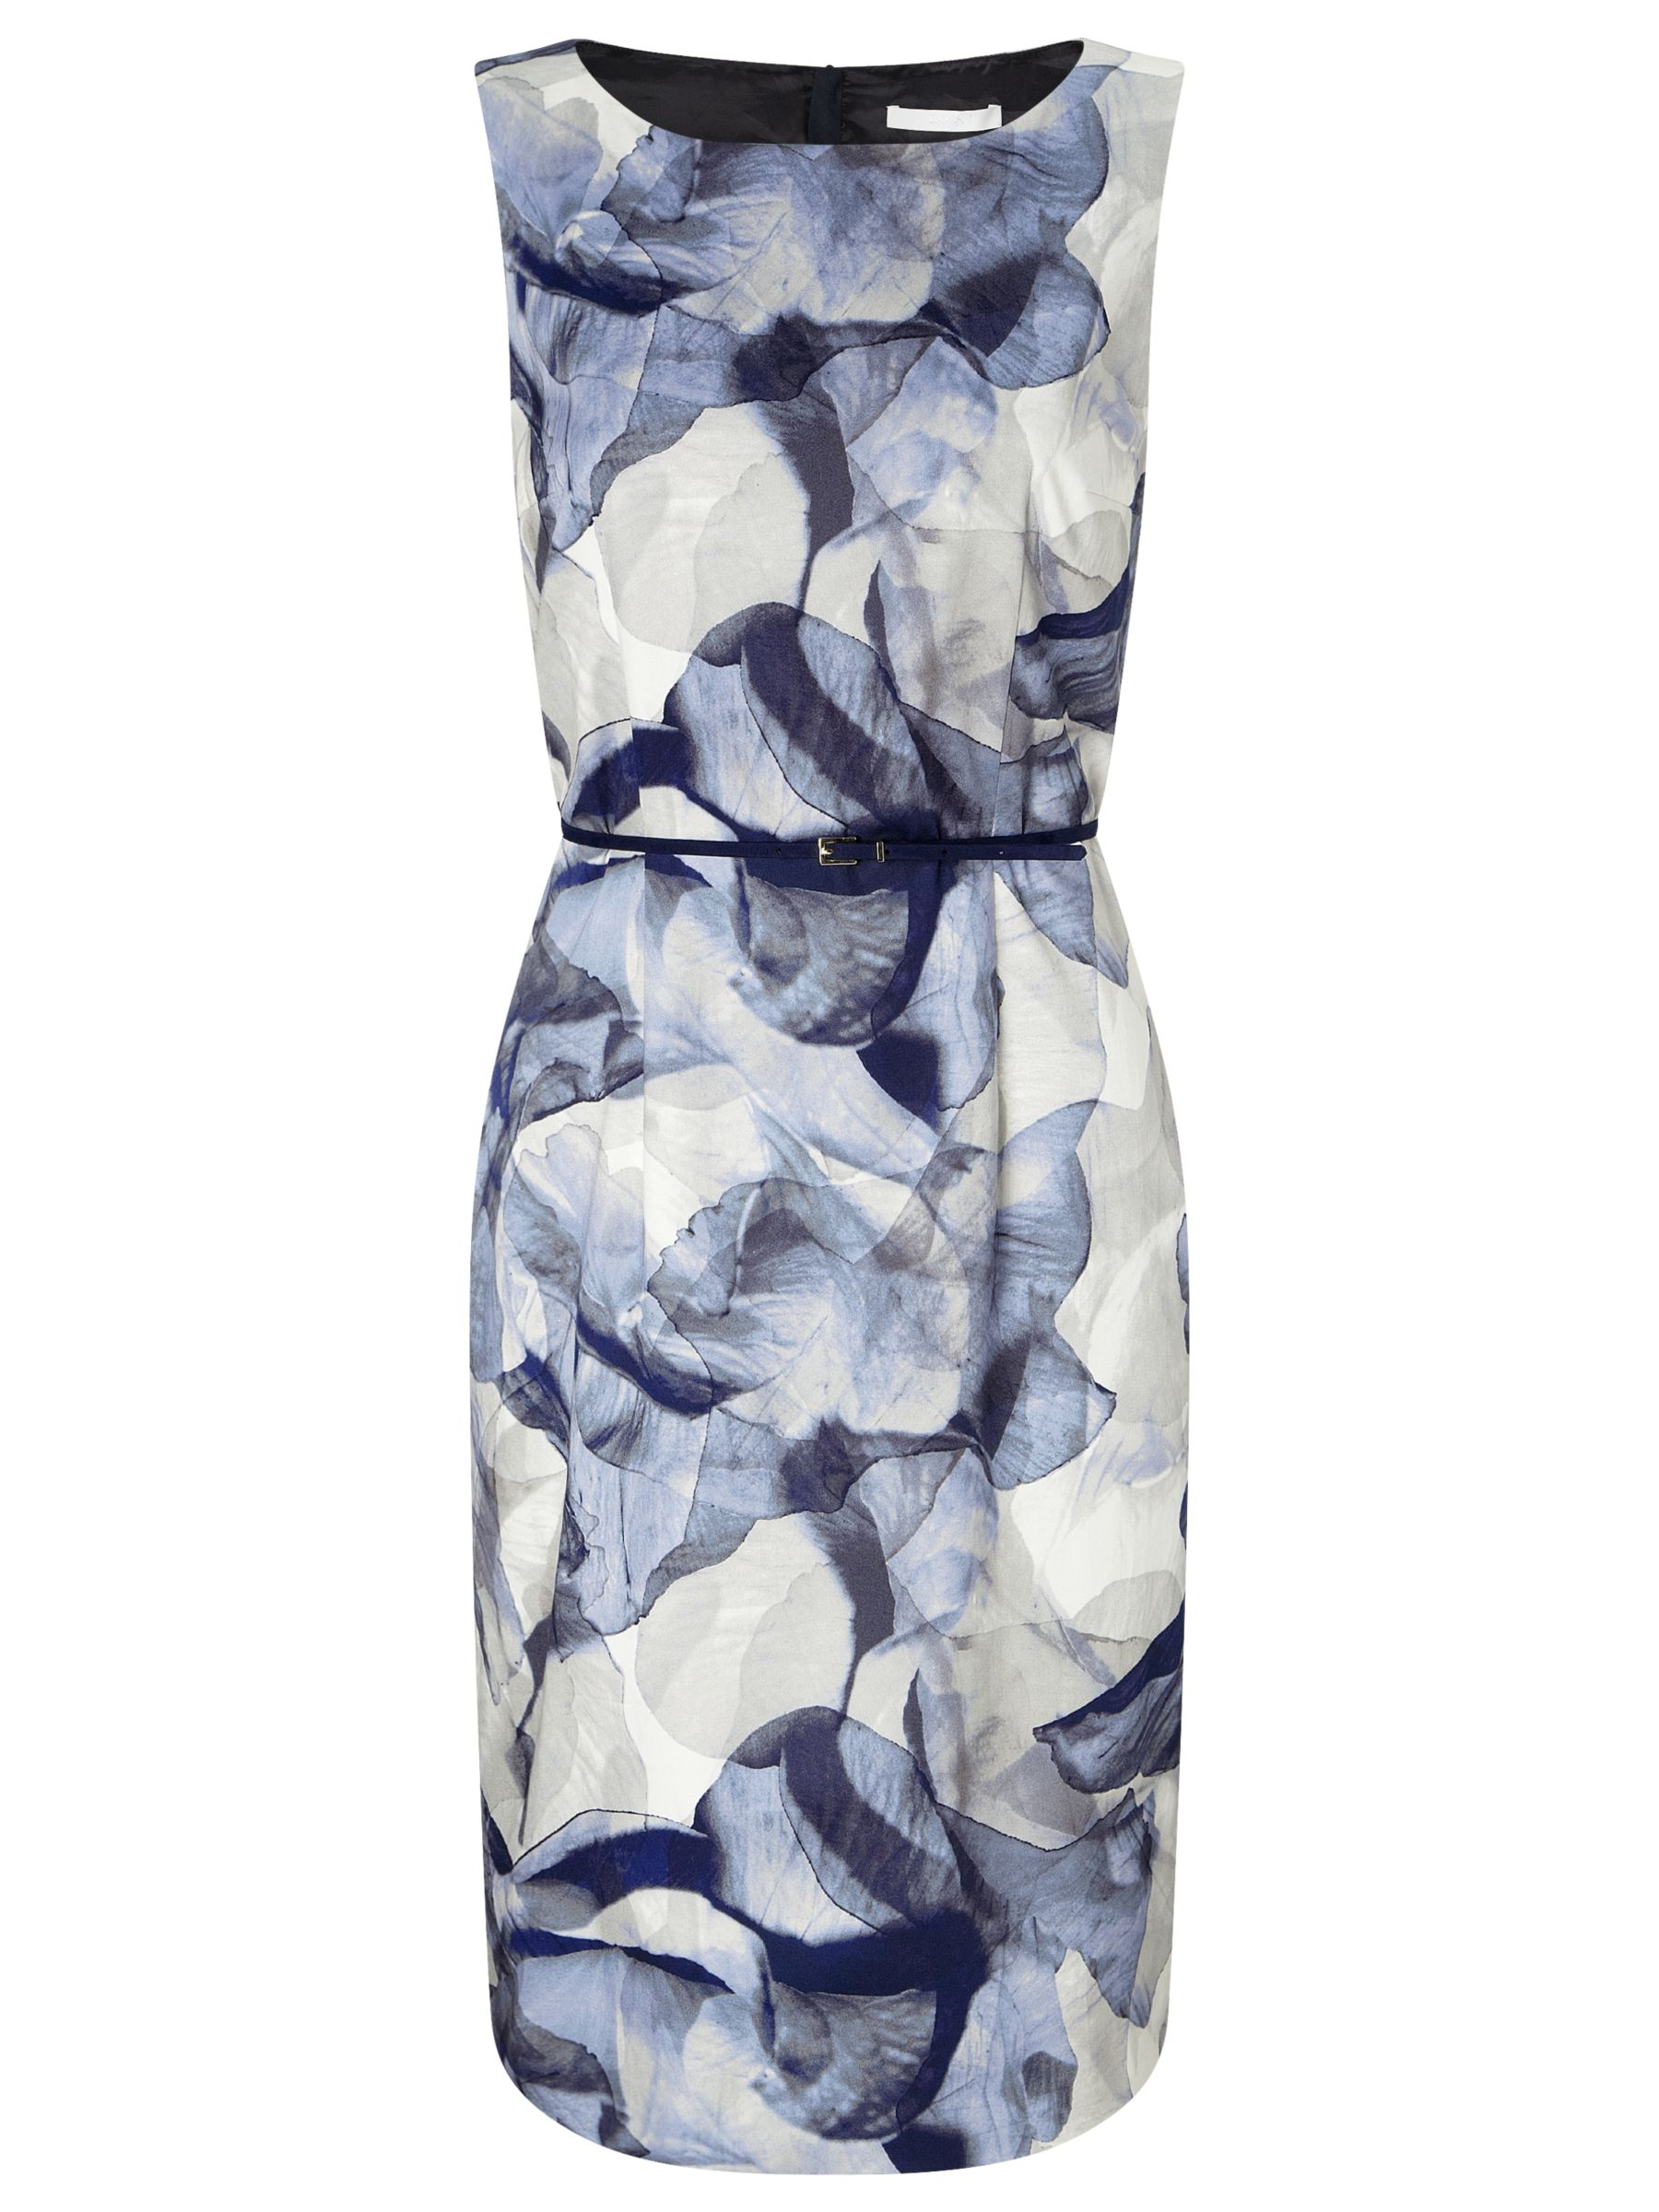 weekend by maxmara foral shift dress grey, weekend, maxmara, foral, shift, dress, grey, boss, 12|14|10|8, women, womens dresses, 1791531